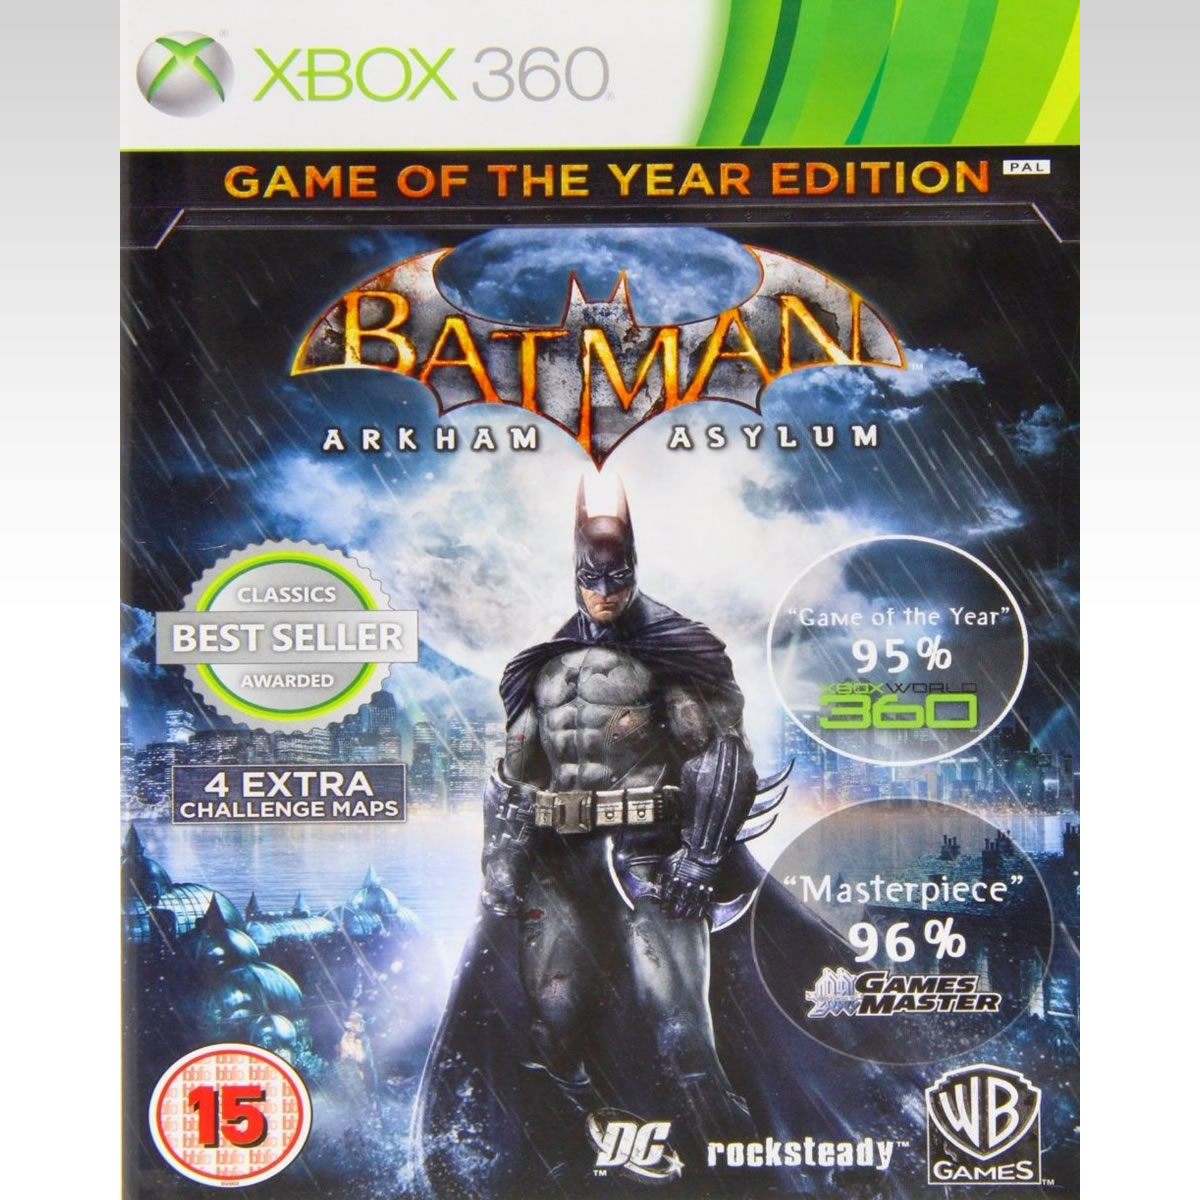 BATMAN ARKHAM ASYLUM GAME OF THE YEAR EDITION (XBOX 360)